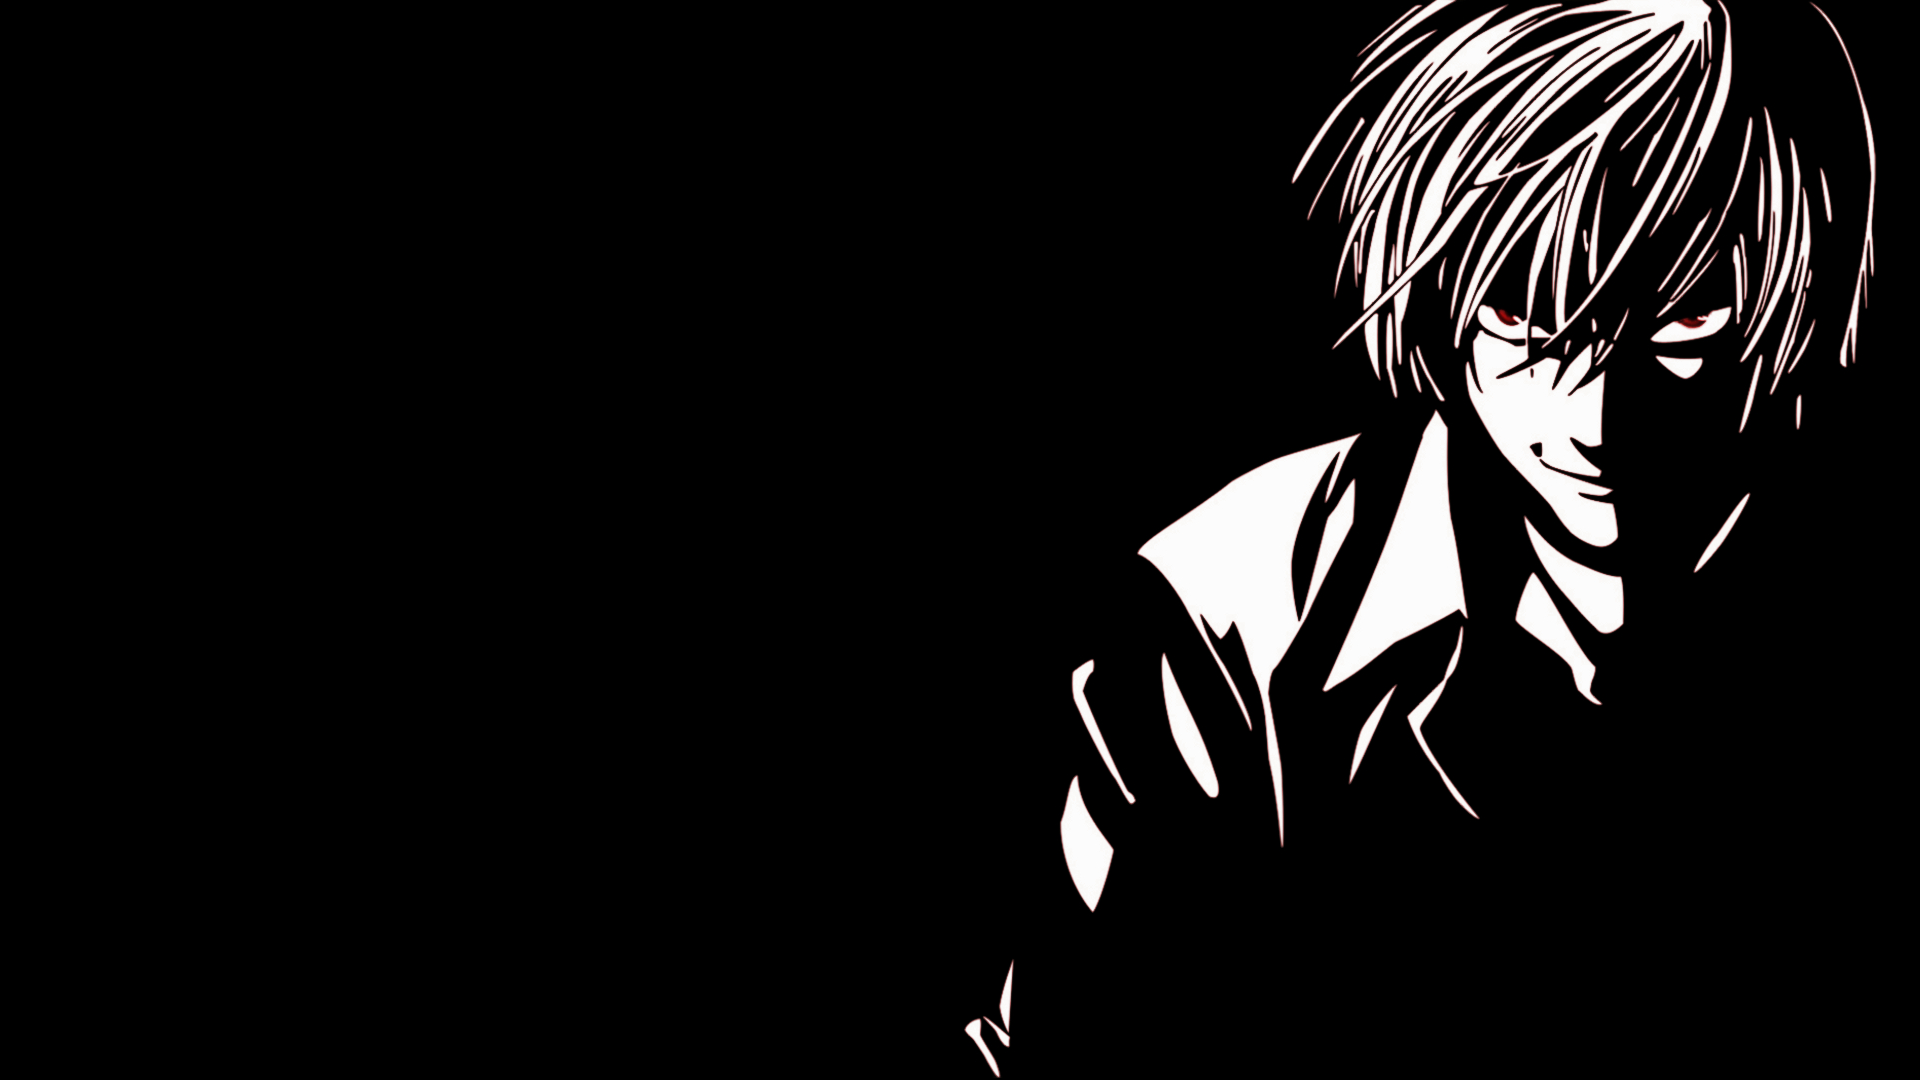 Death Note – Light Yagami | PS4Wallpapers.com